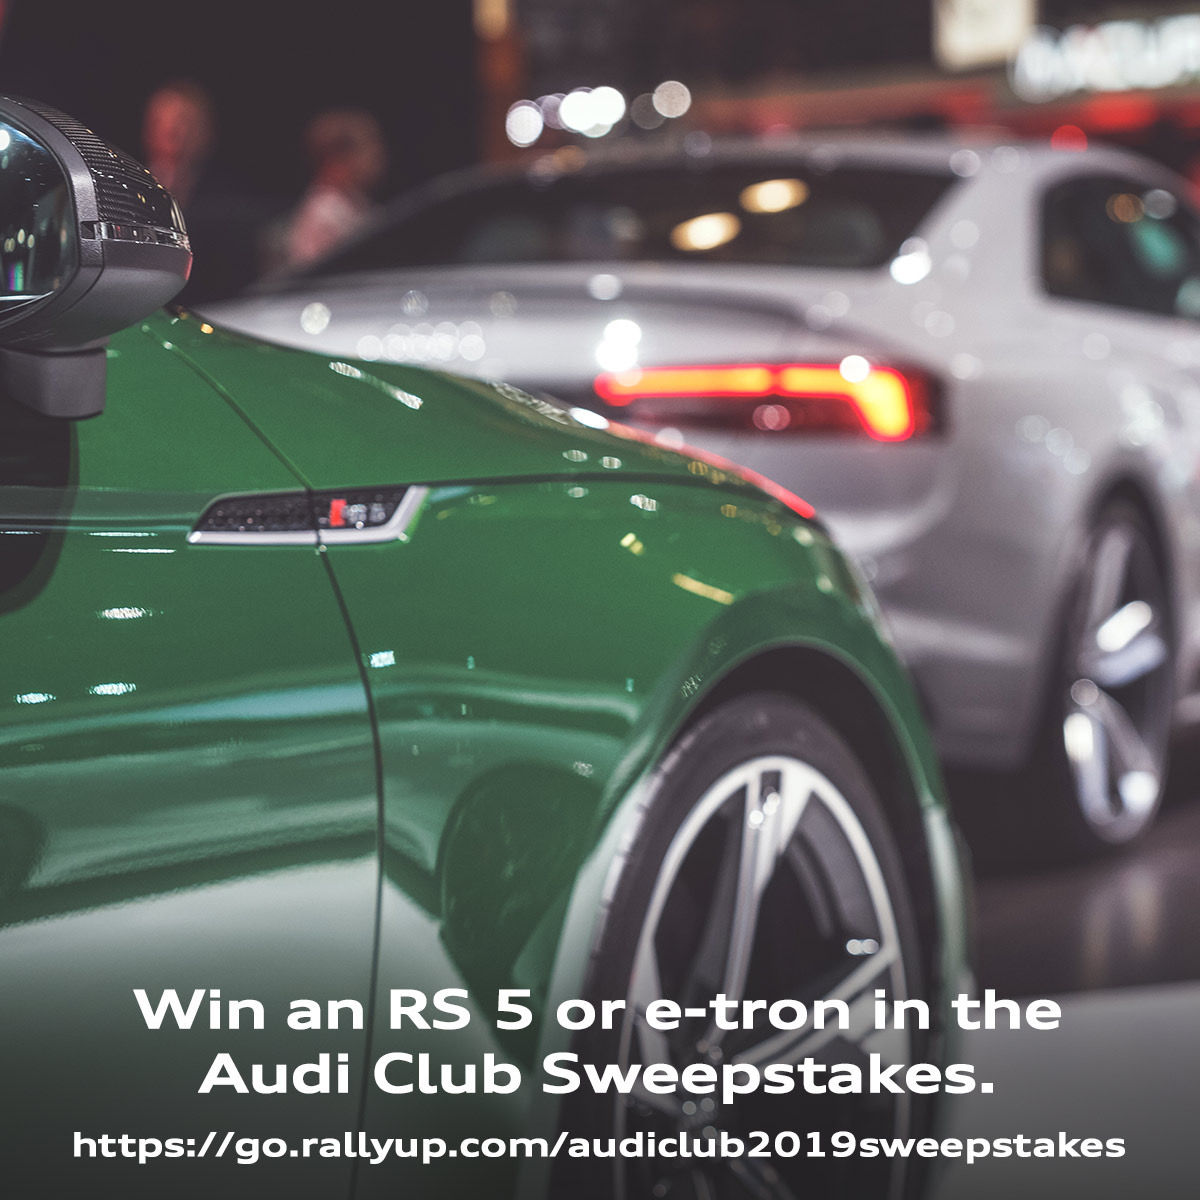 Audi Club Sweepstakes Is About to Cross the Finish Line...